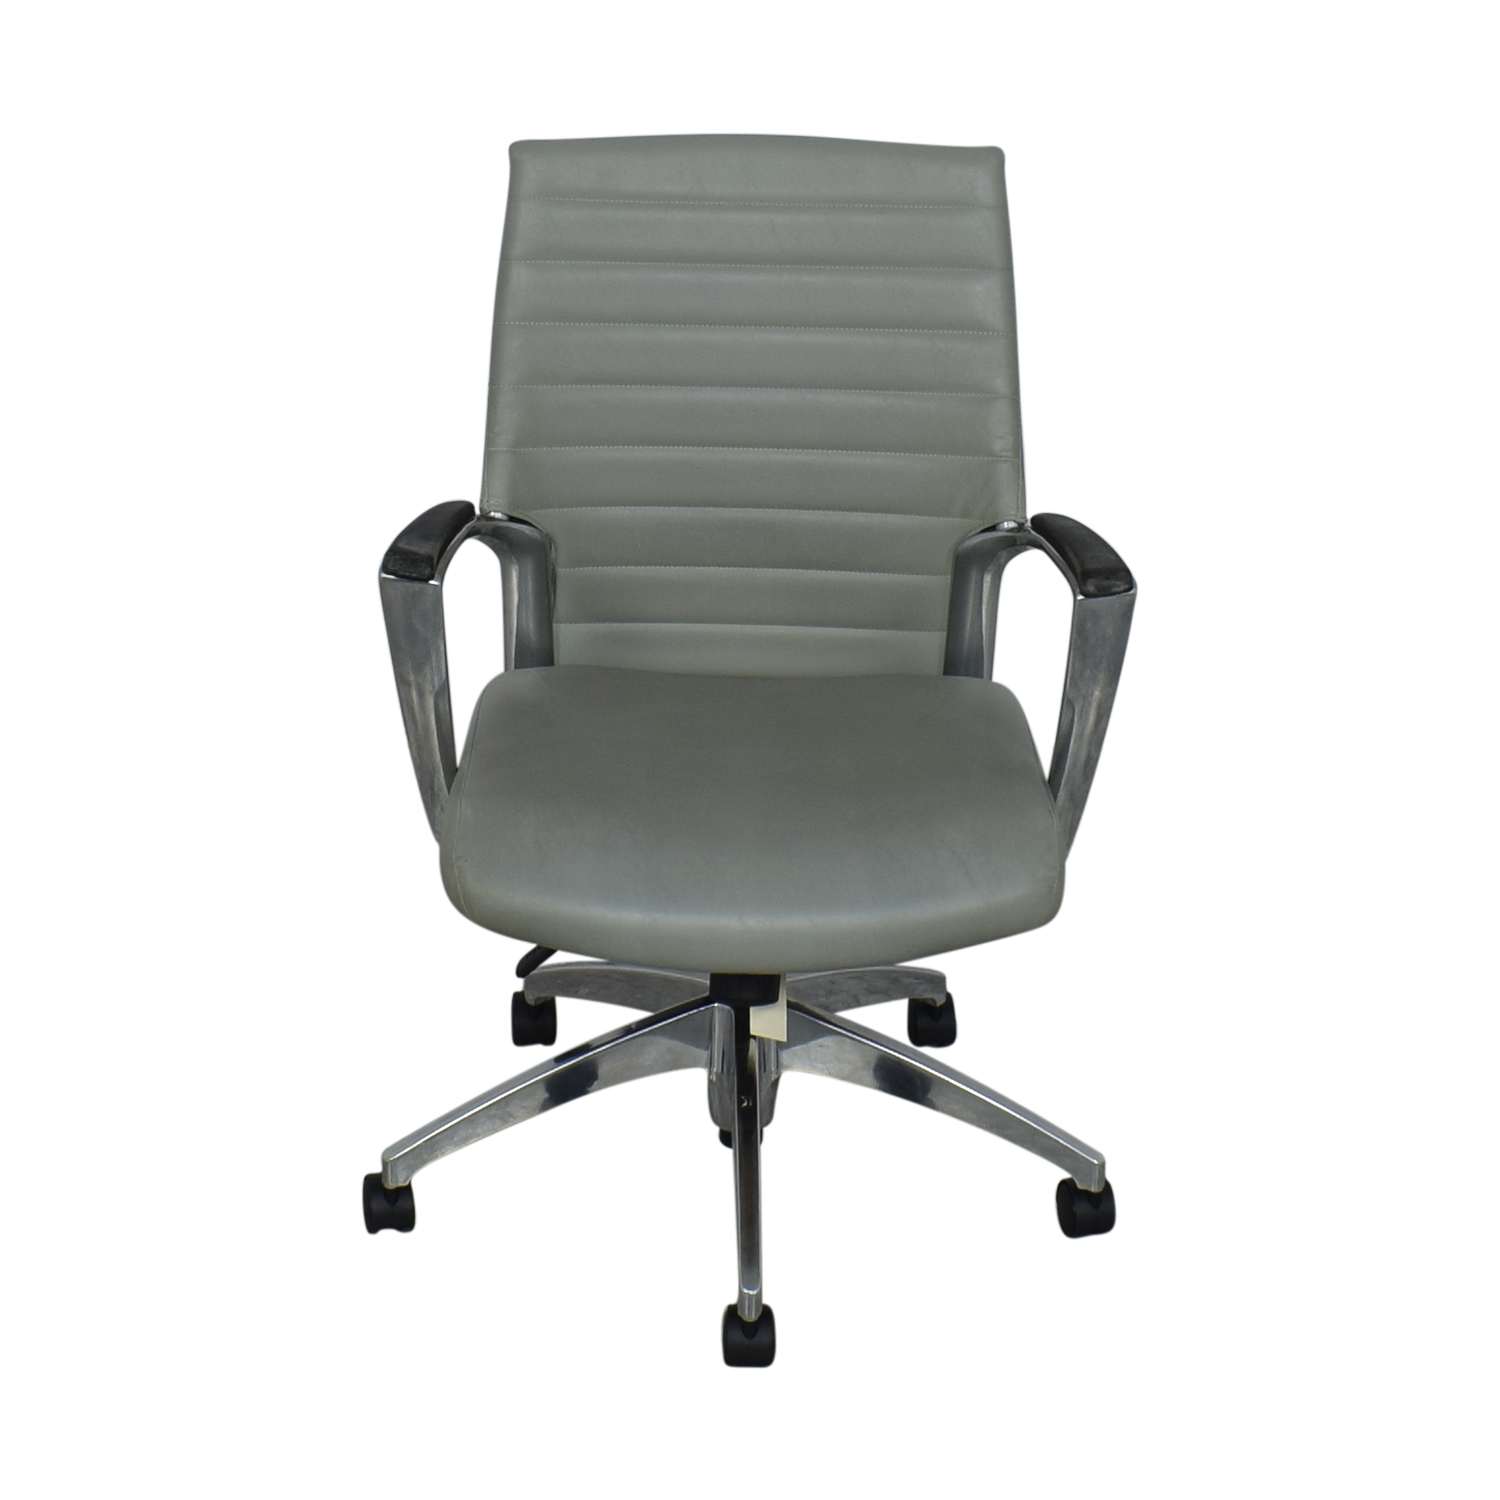 Global Global Accord Medium Back Tilter Chair for sale